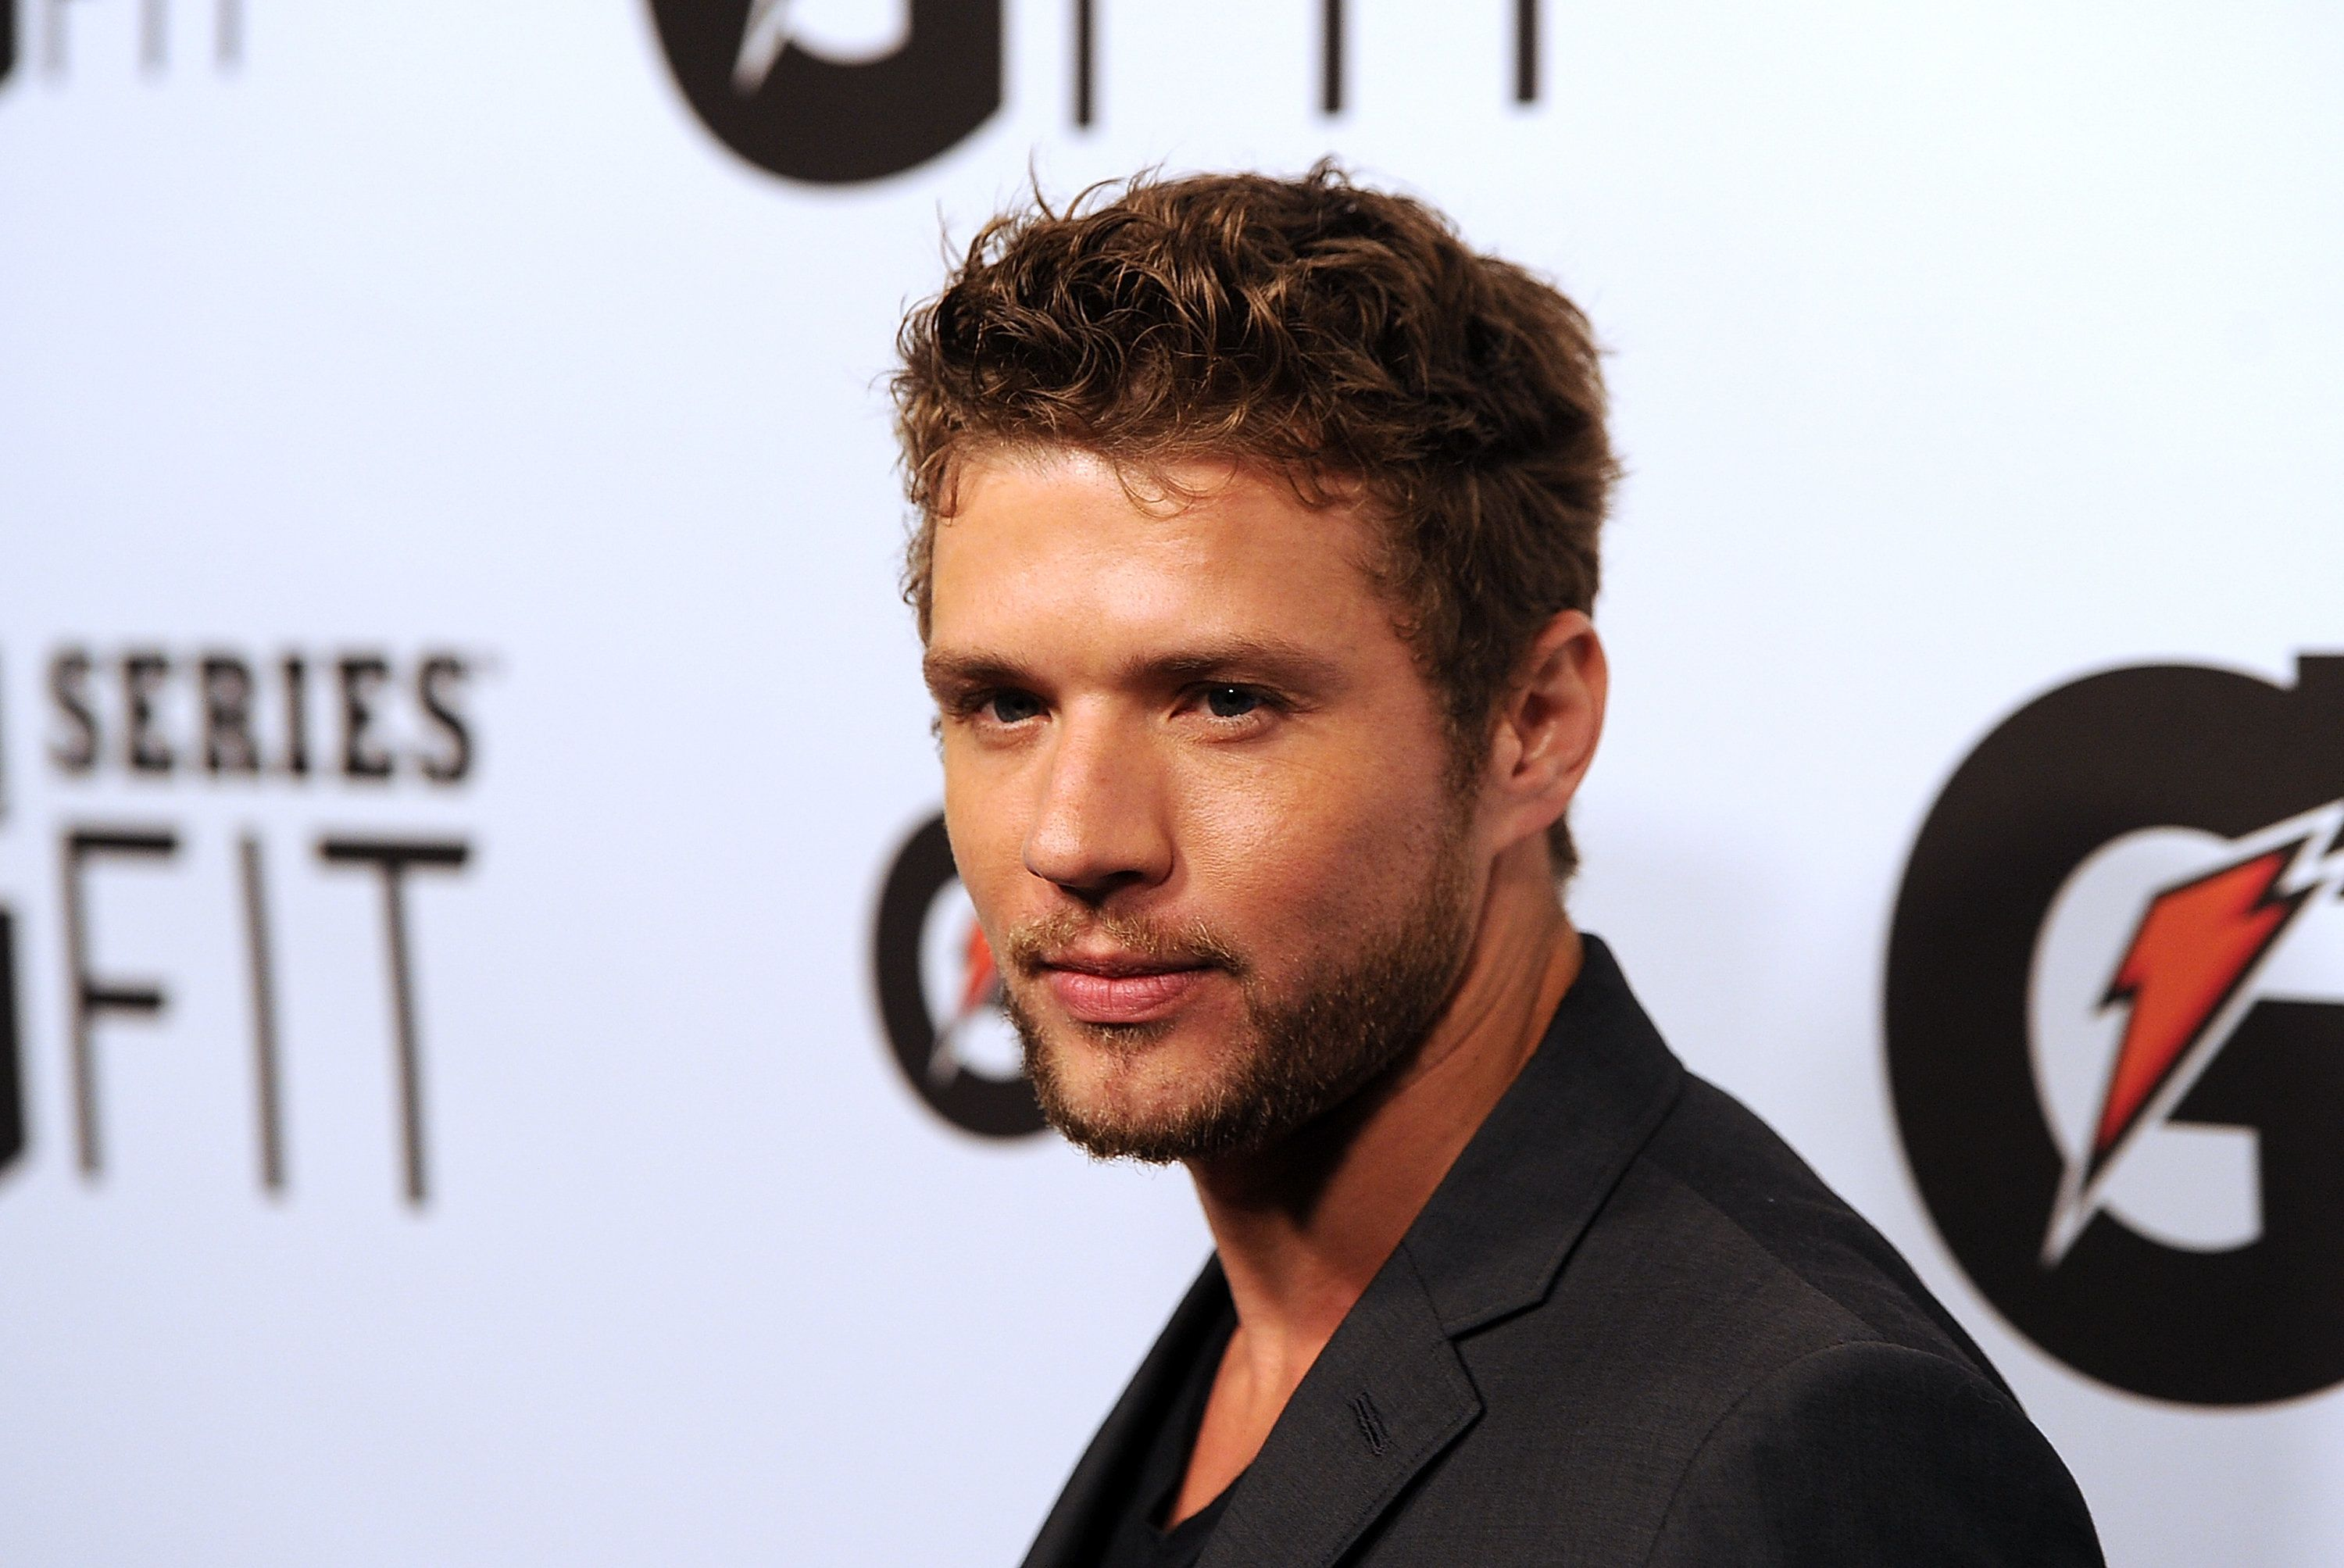 Ryan Phillippe Says He Is 'Saddened And Disgusted' By Assault